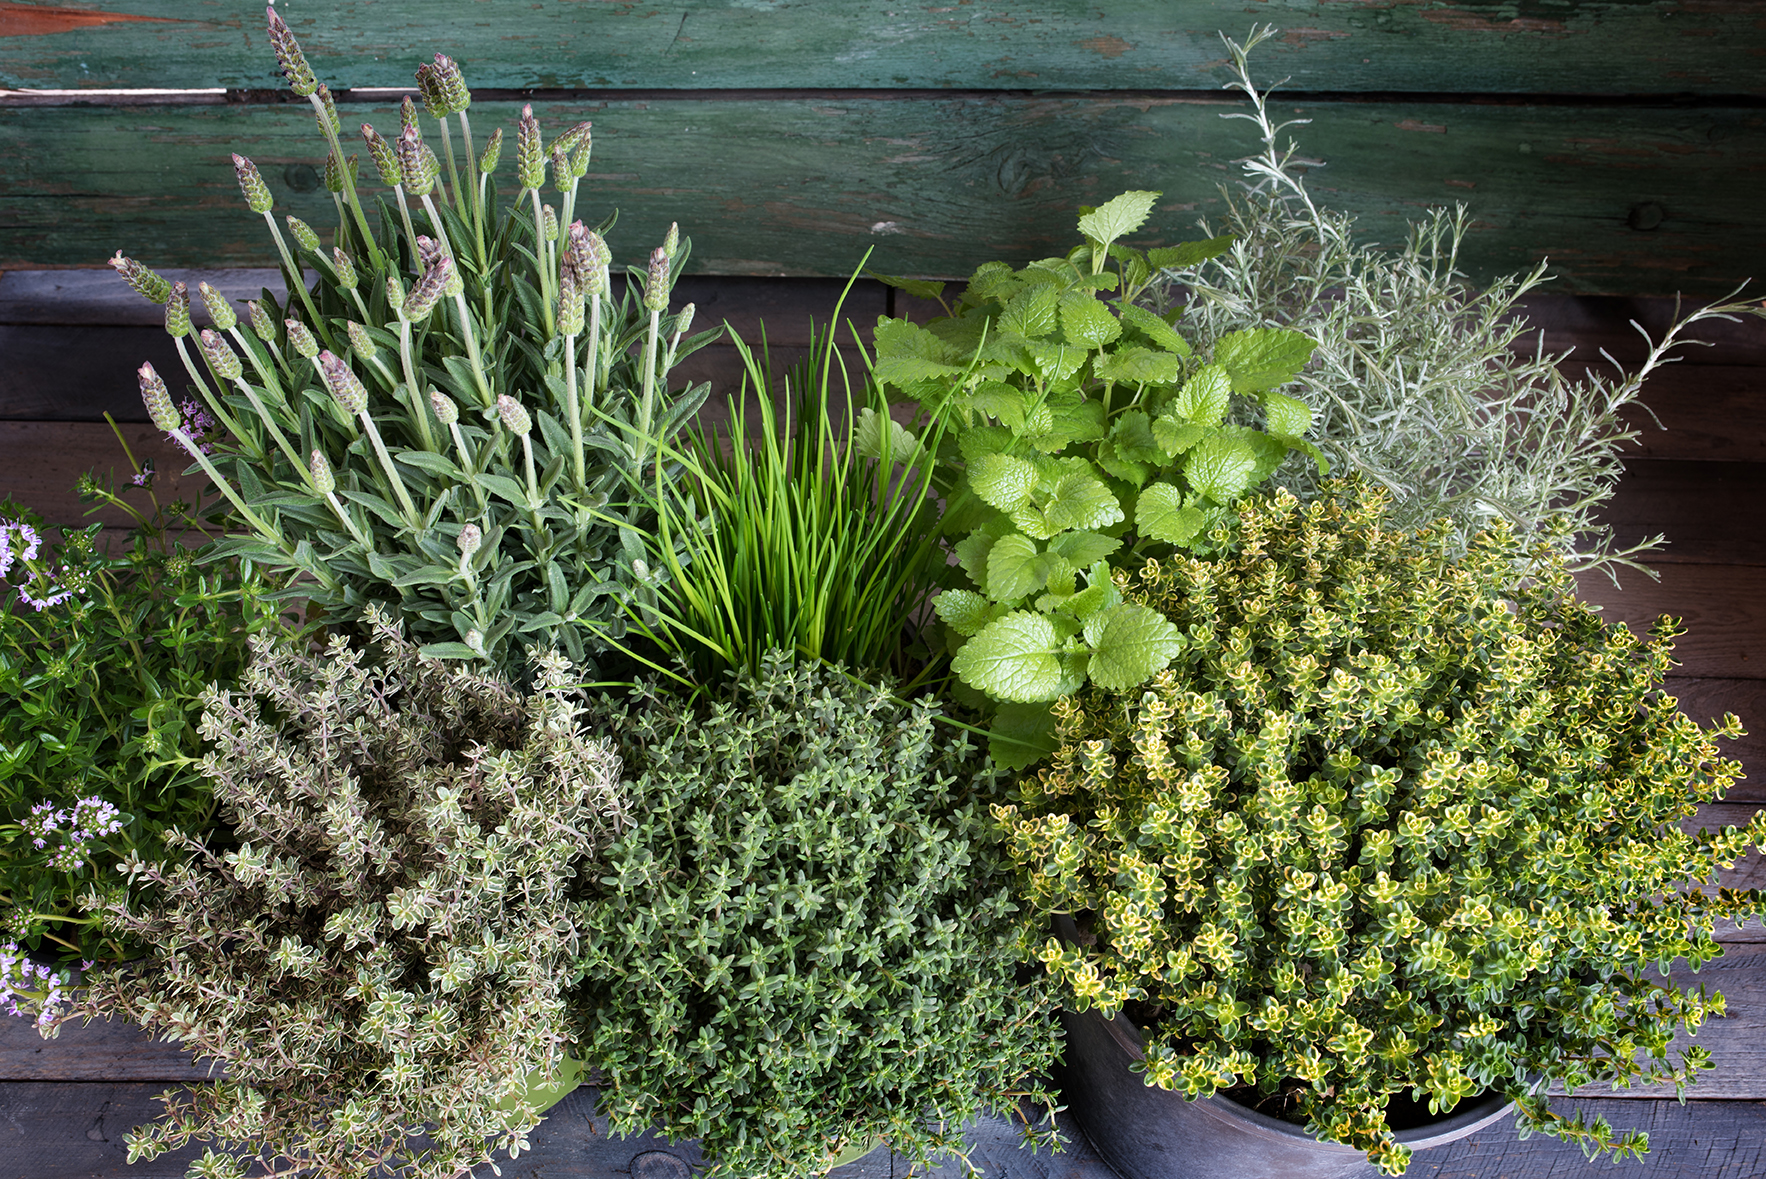 Small E Herb Garden On A Rustic Wooden Table